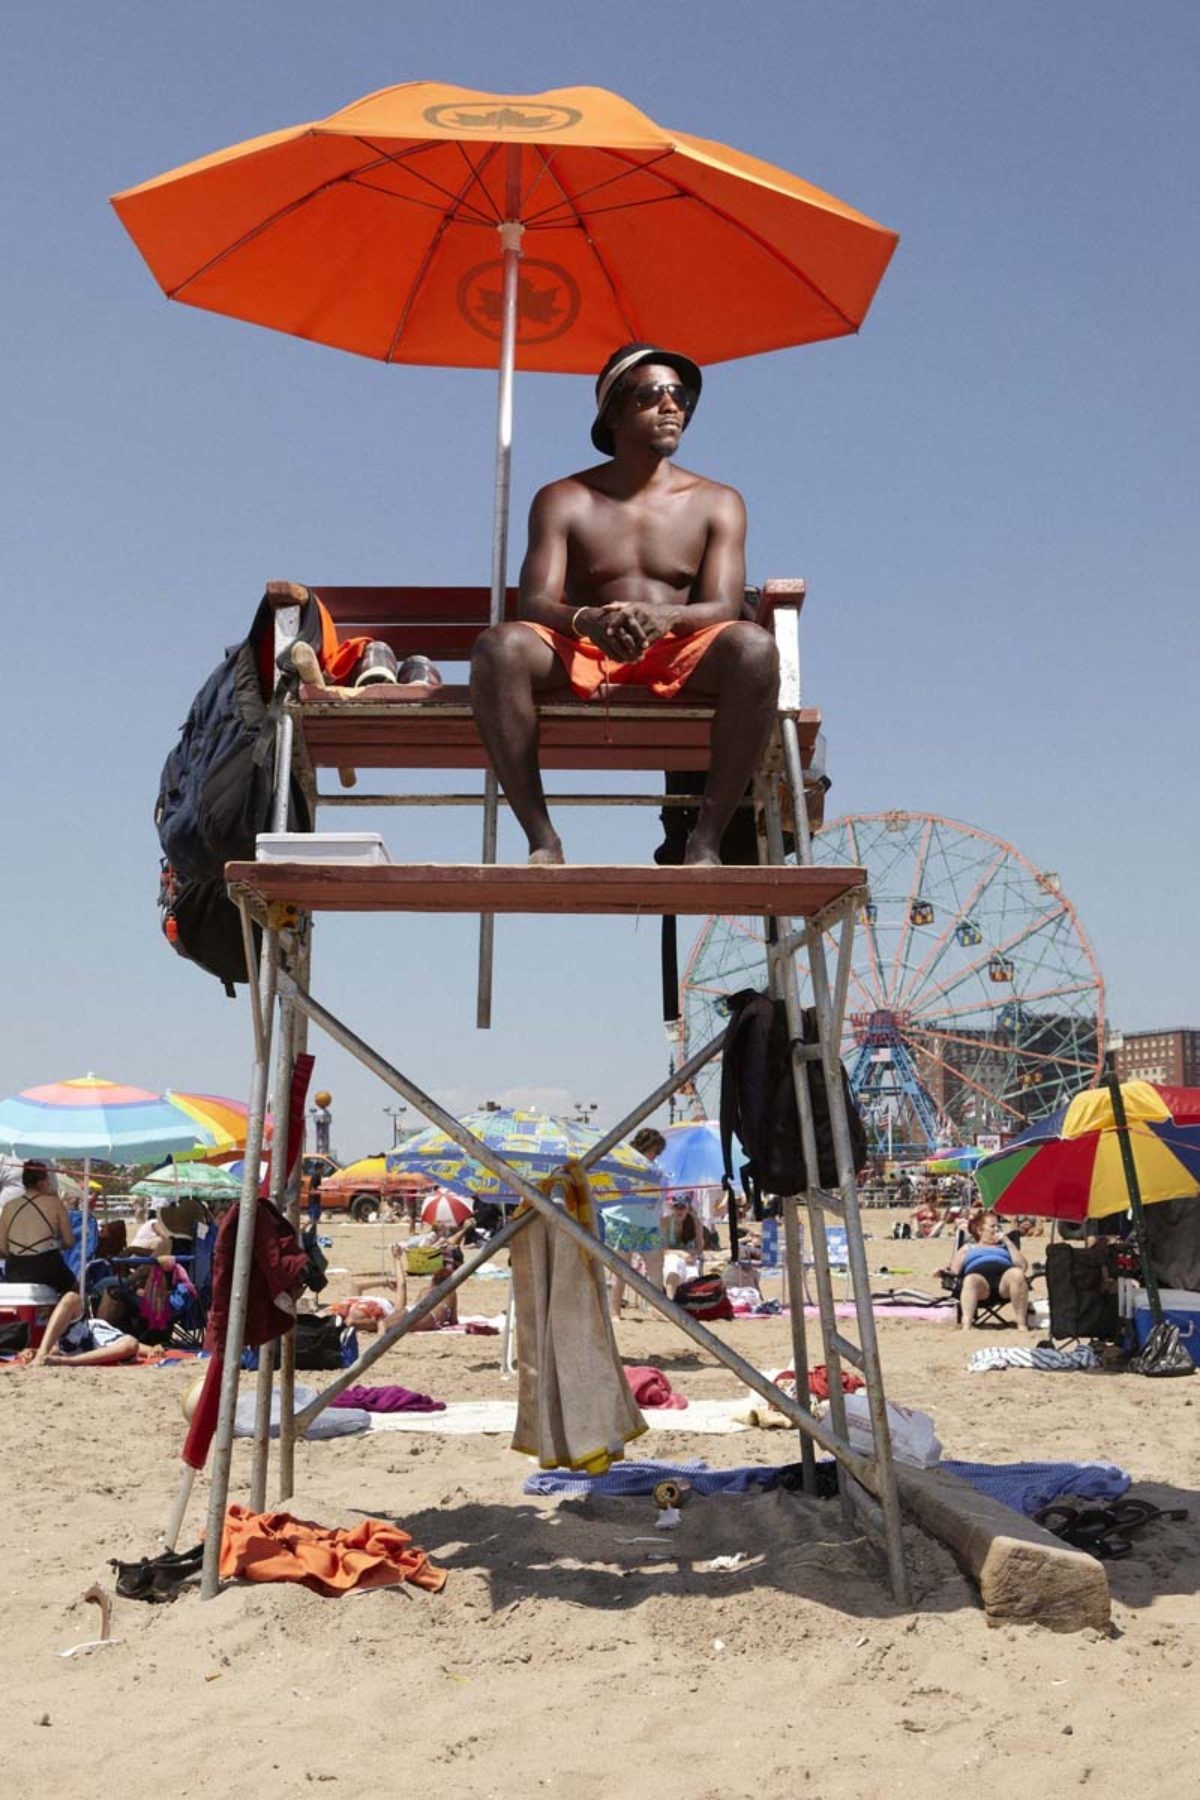 Reed Young, See you at Coney Island, 2012, inkjet on Kodak paper, variable dimensions (q)